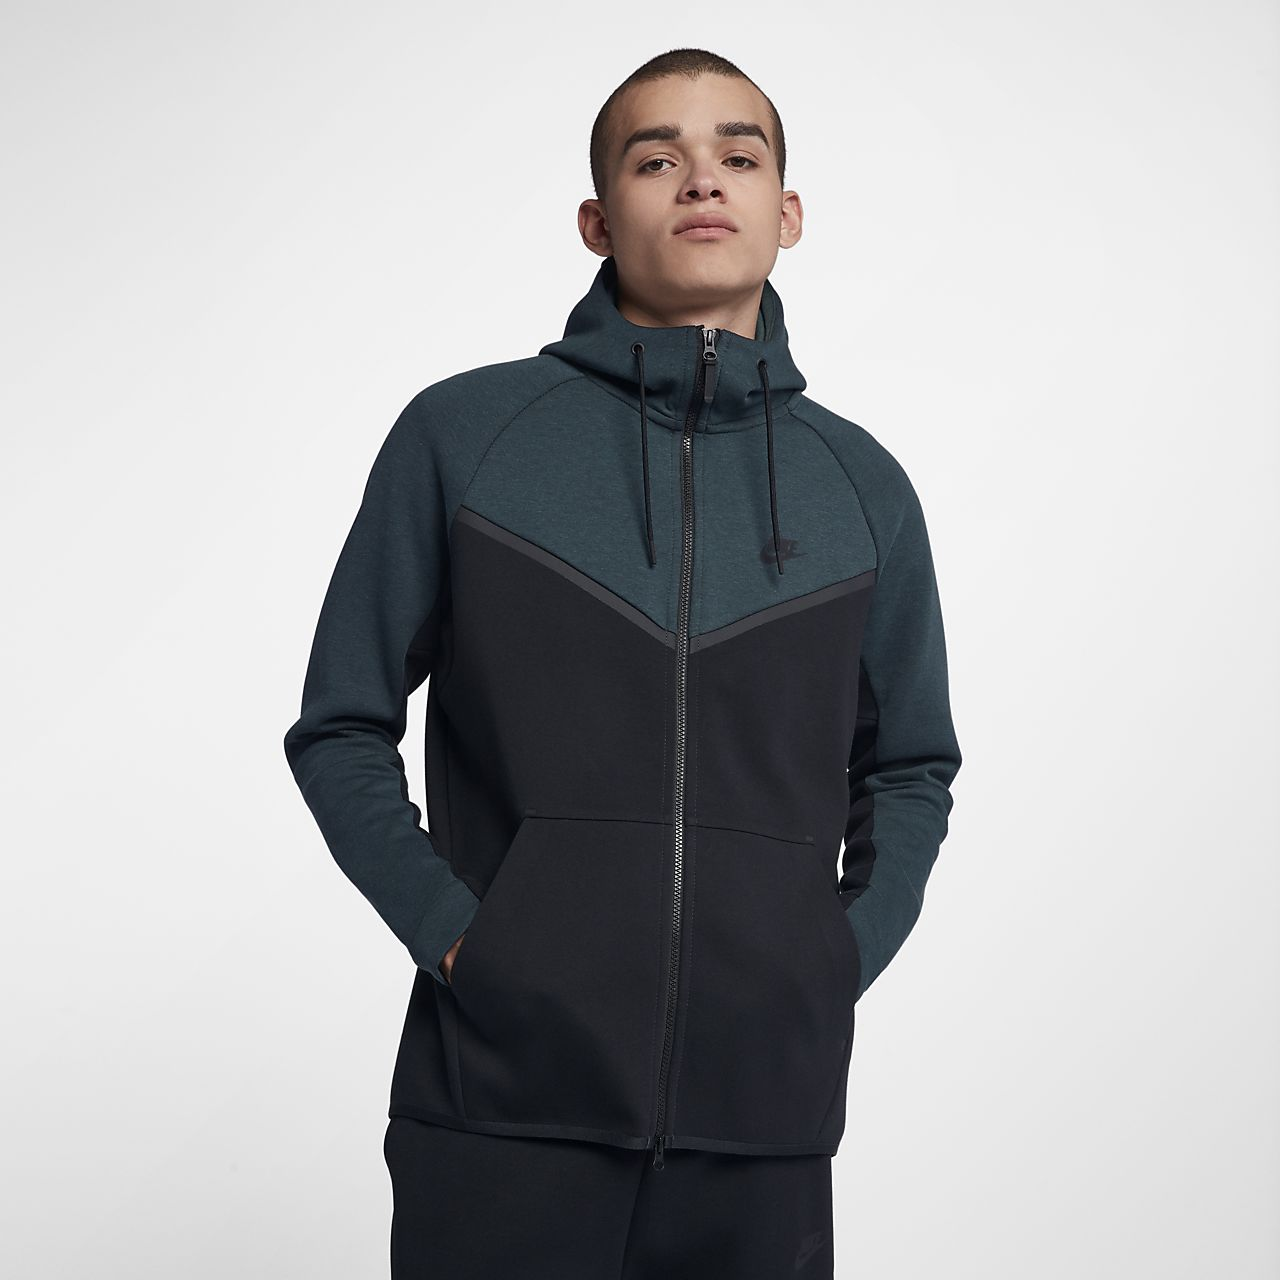 ... Nike Sportswear Tech Fleece Windrunner Men's Full-Zip Hoodie